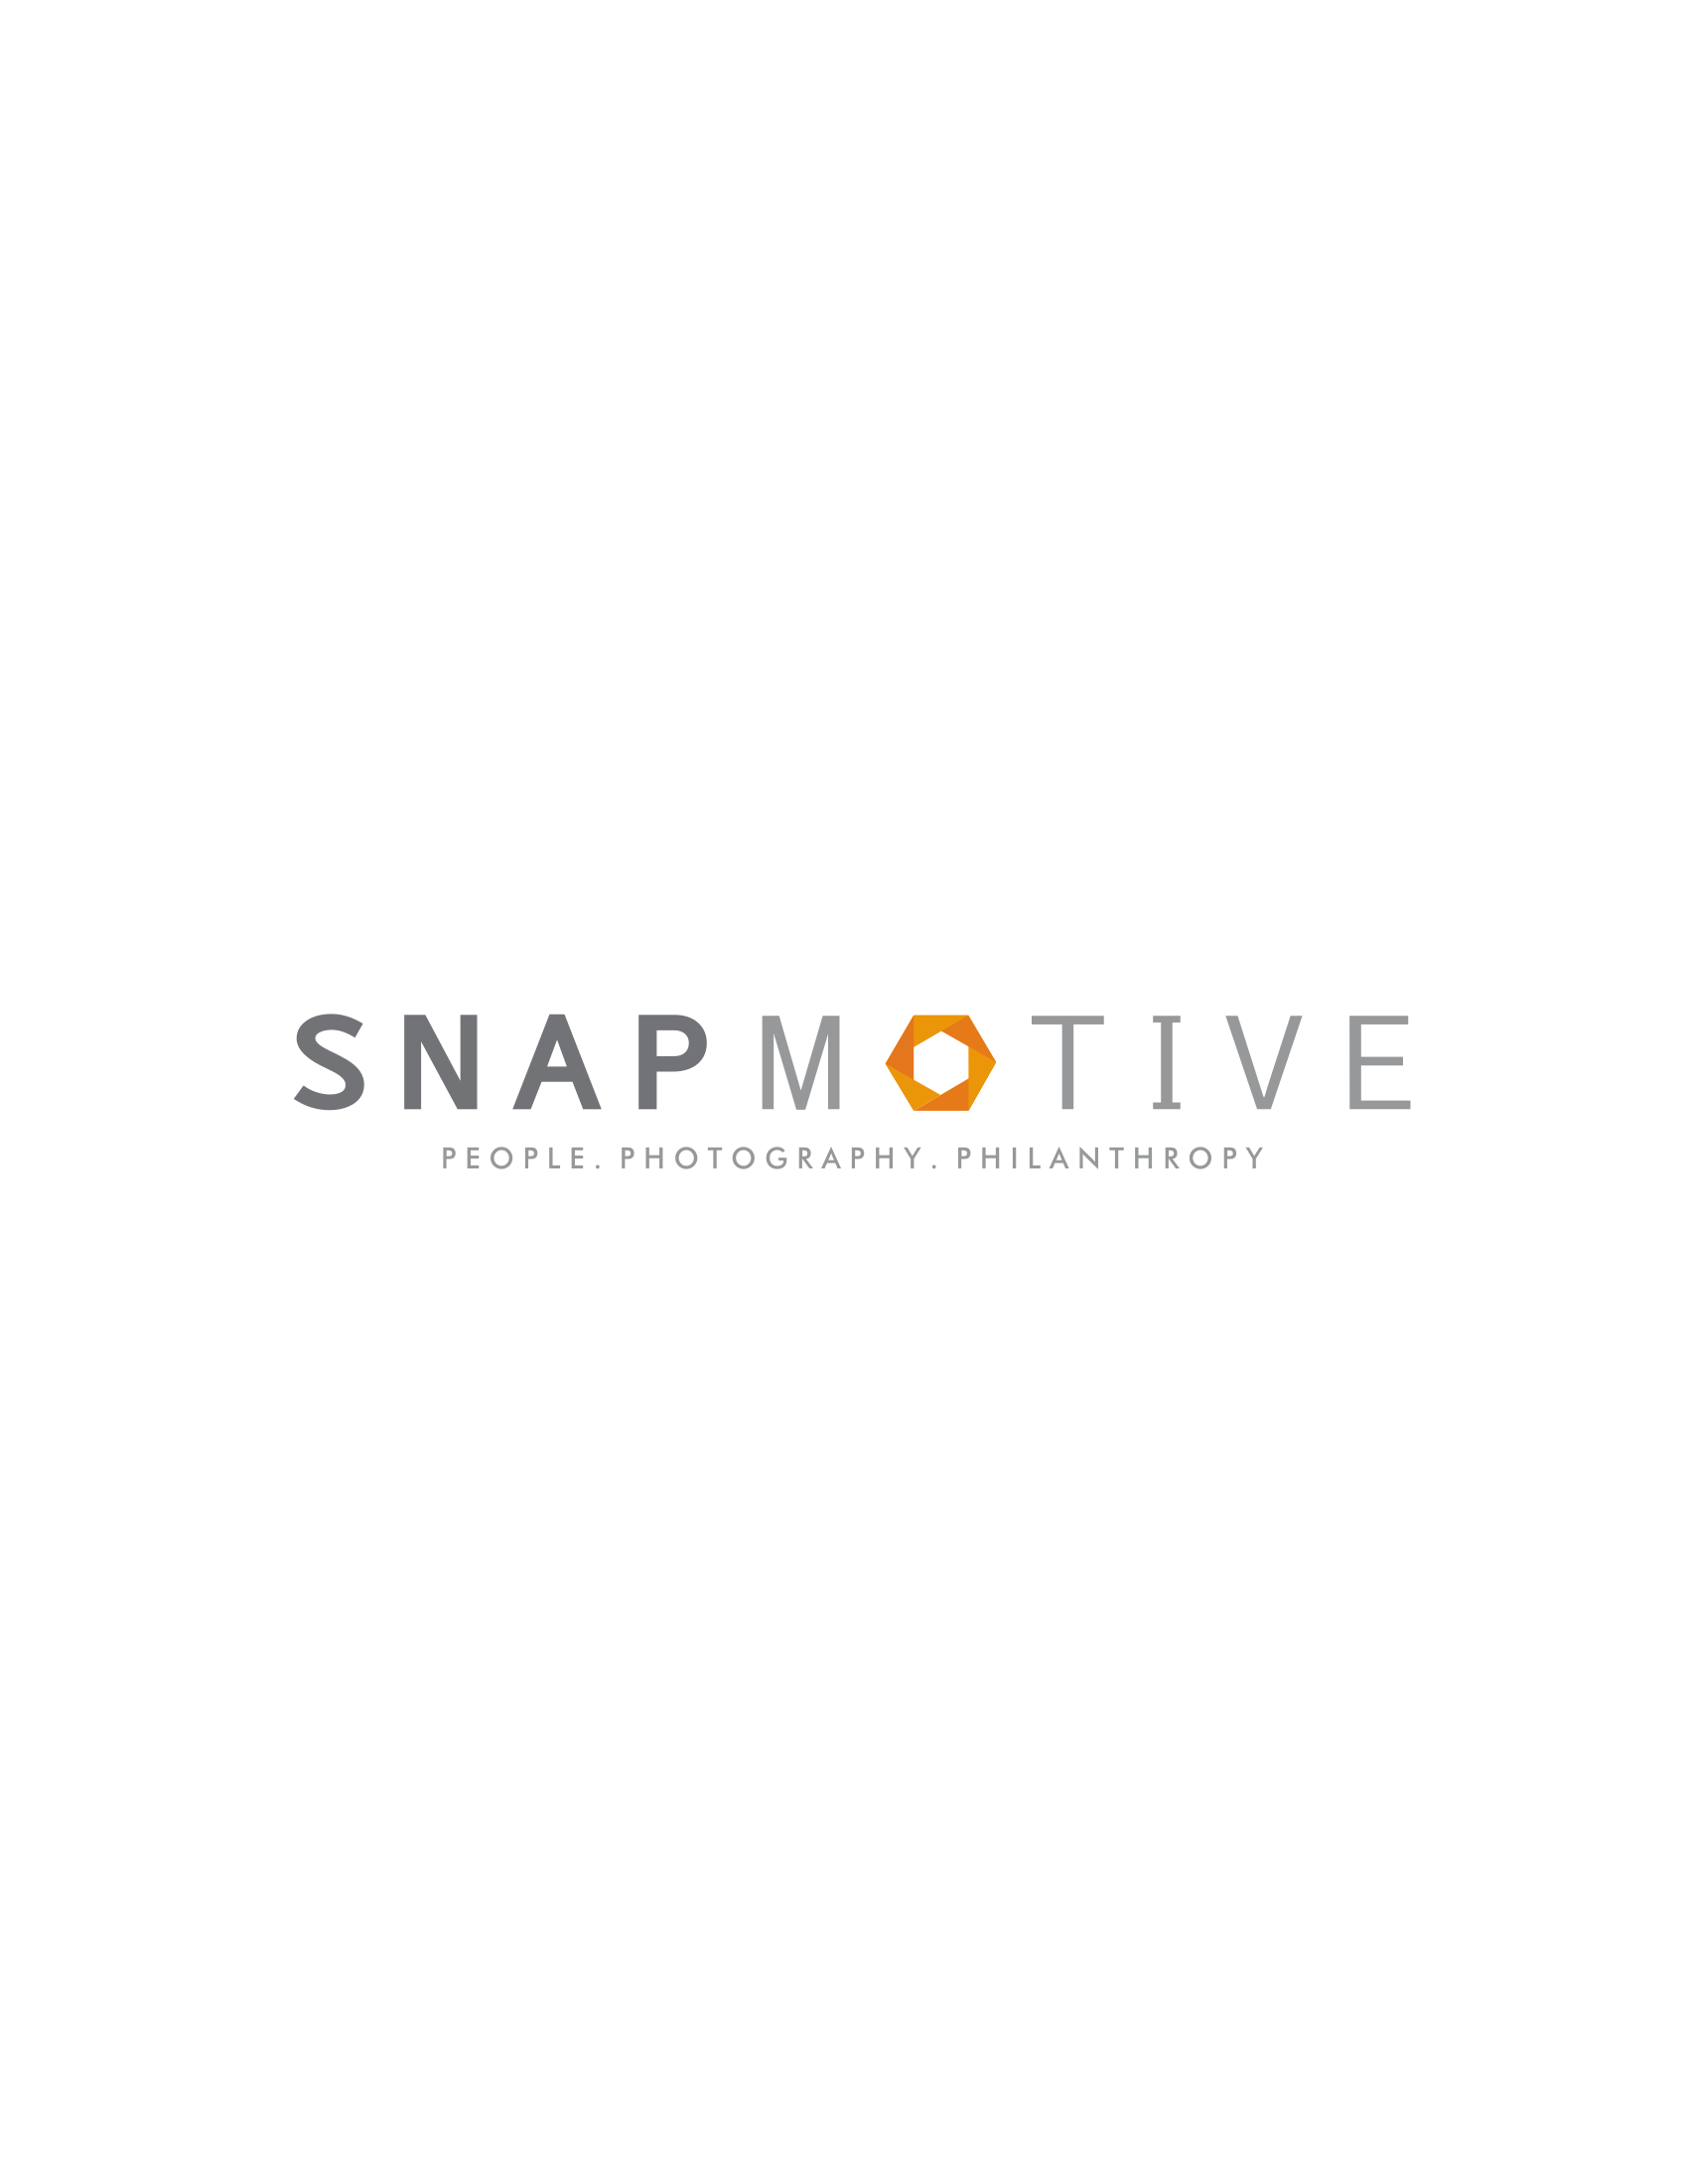 New logo wanted for a new startup: Snapmotive!